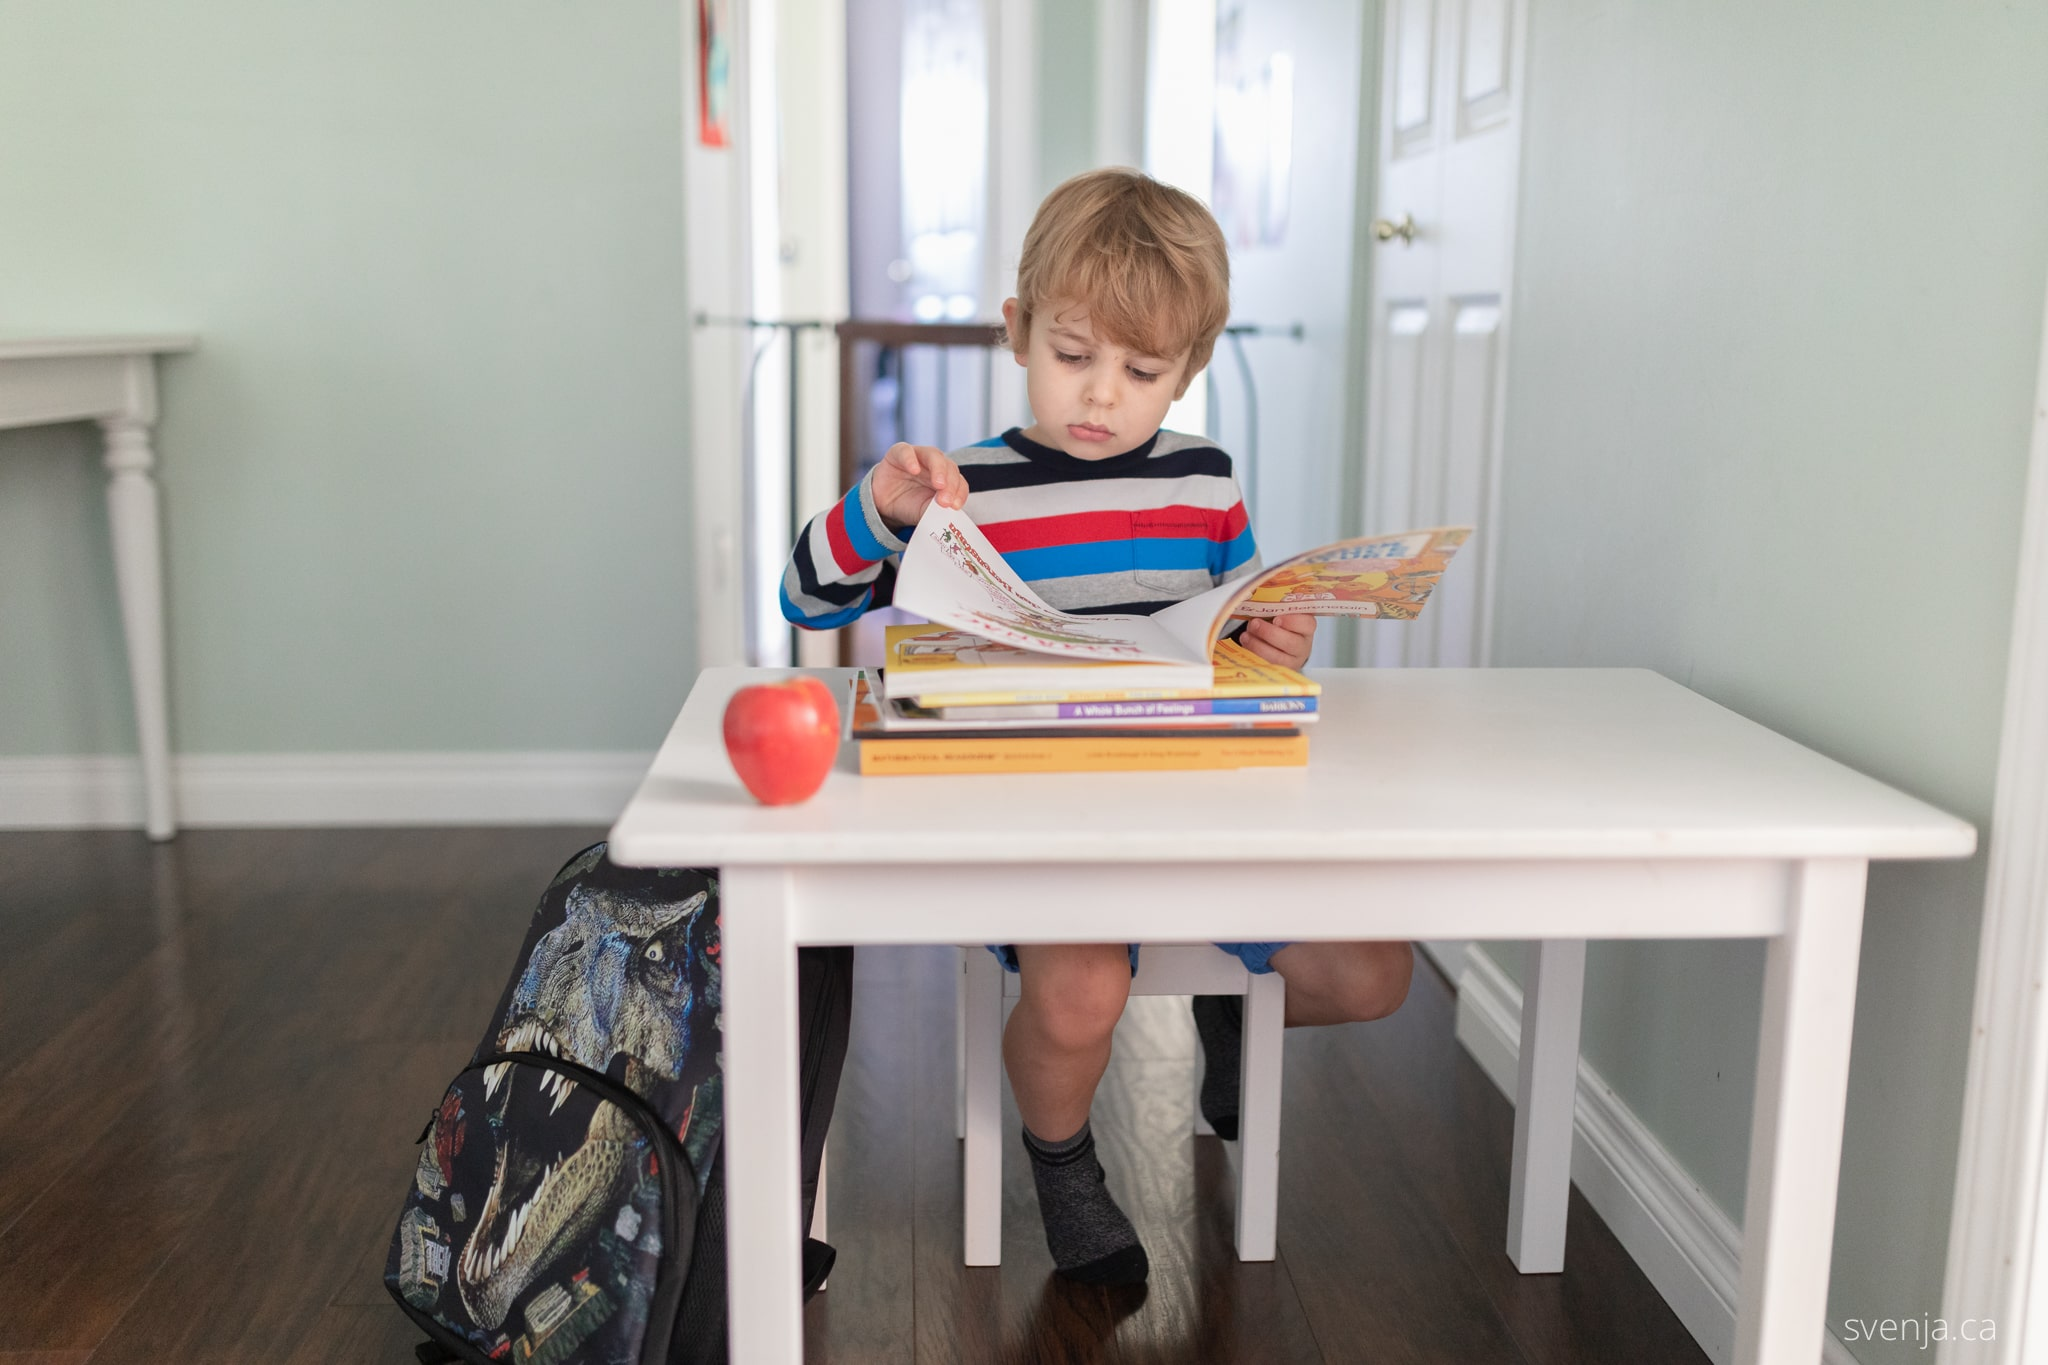 a young boy looks over a work book while seated at a desk